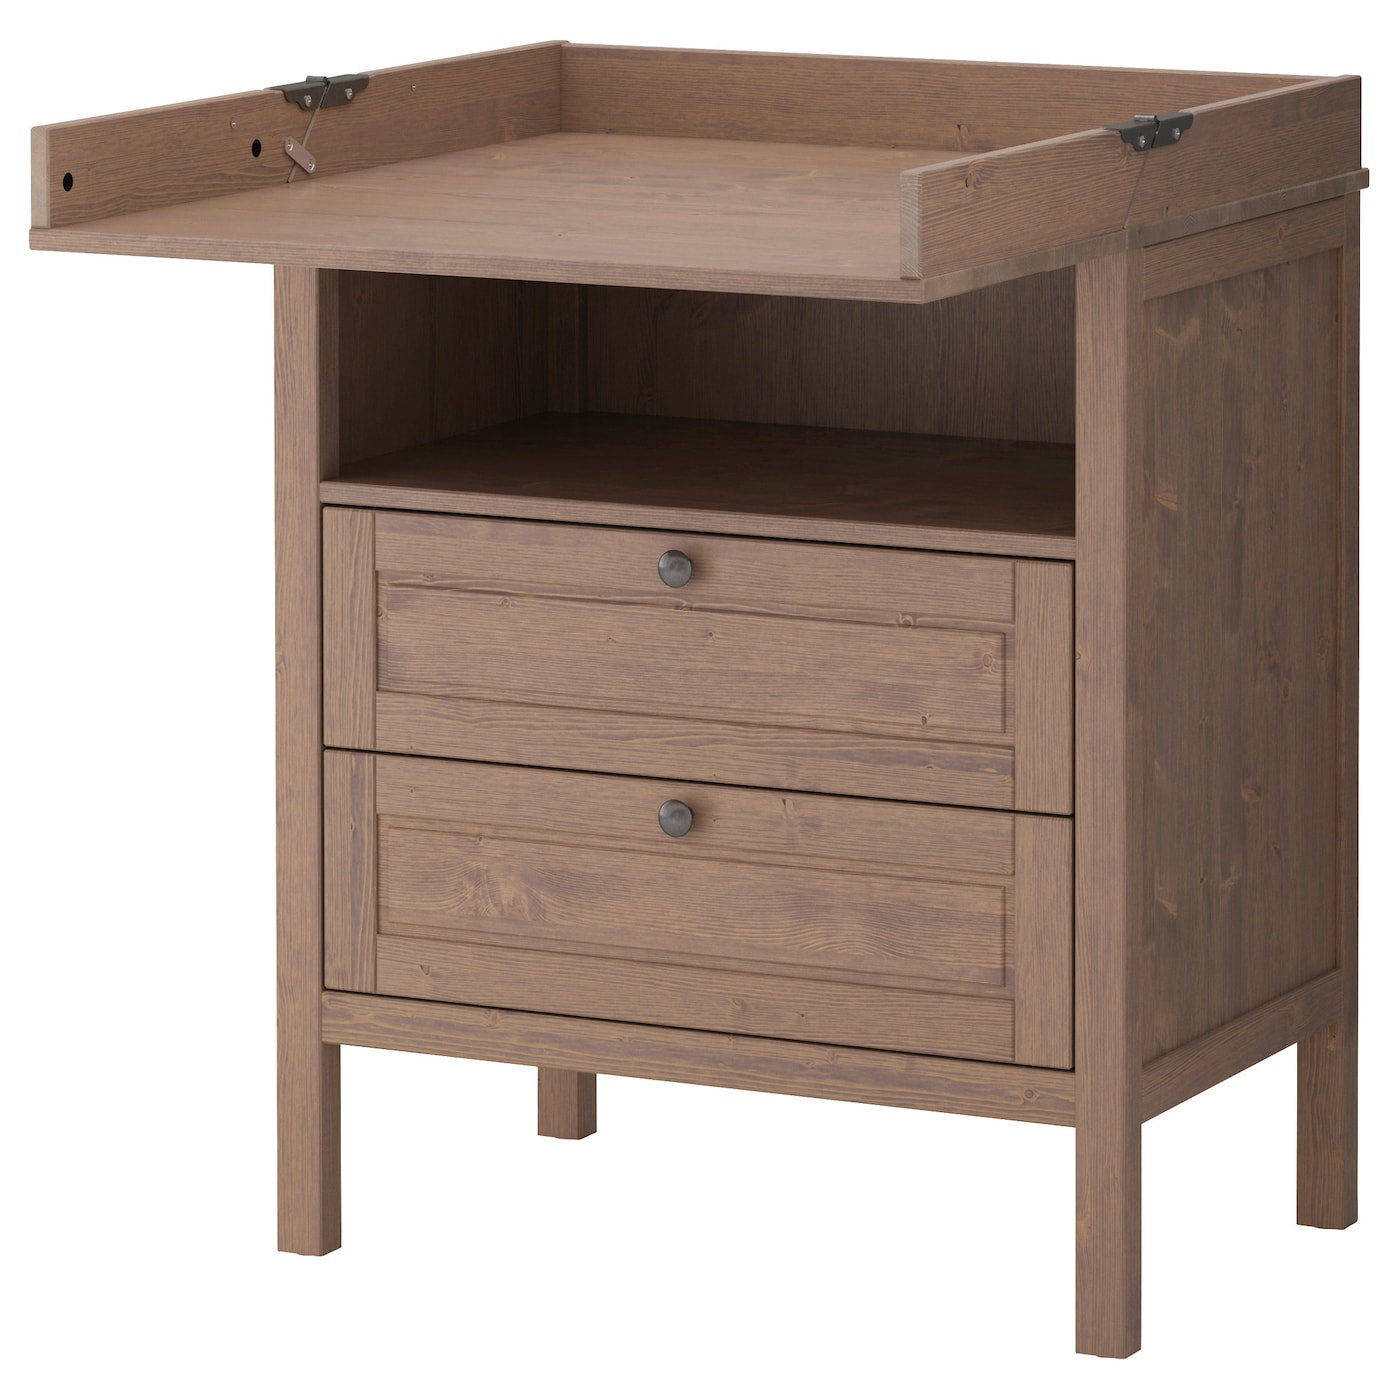 Ikea Pax Schrank Planer Schweiz ~ IKEA SUNDVIK changing table chest of drawers Comfortable height for